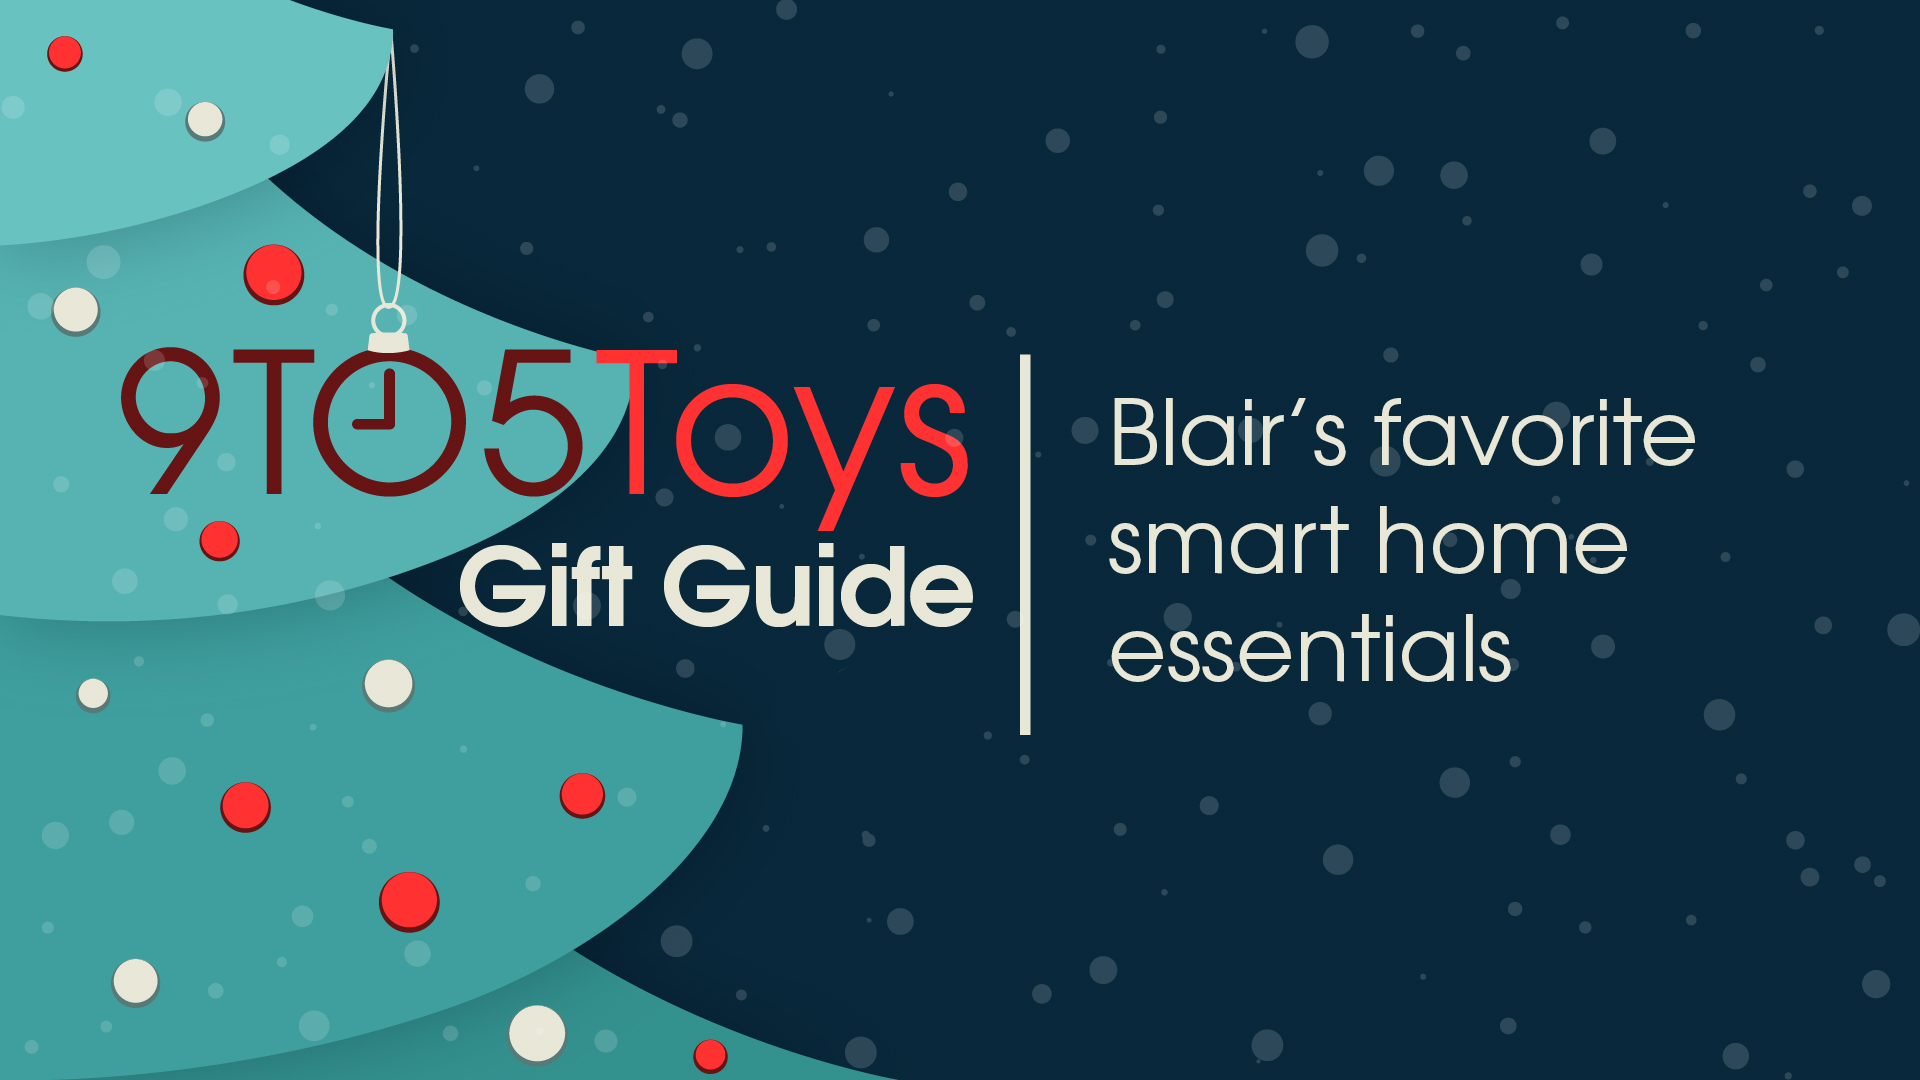 Smart home gift guide